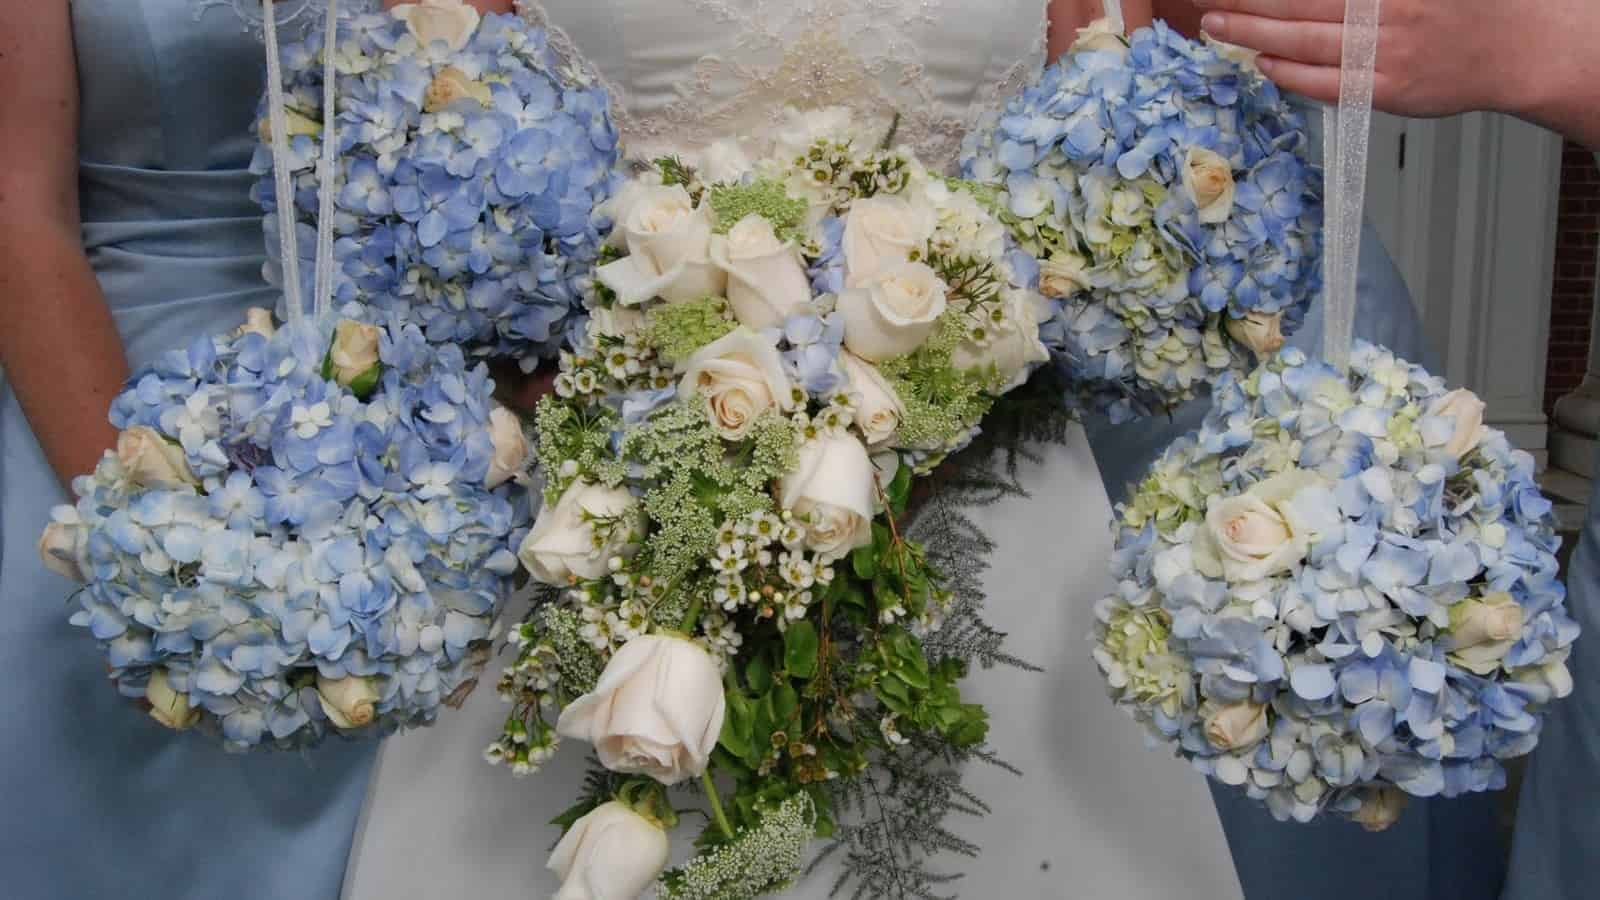 All the hydrangea bouquets